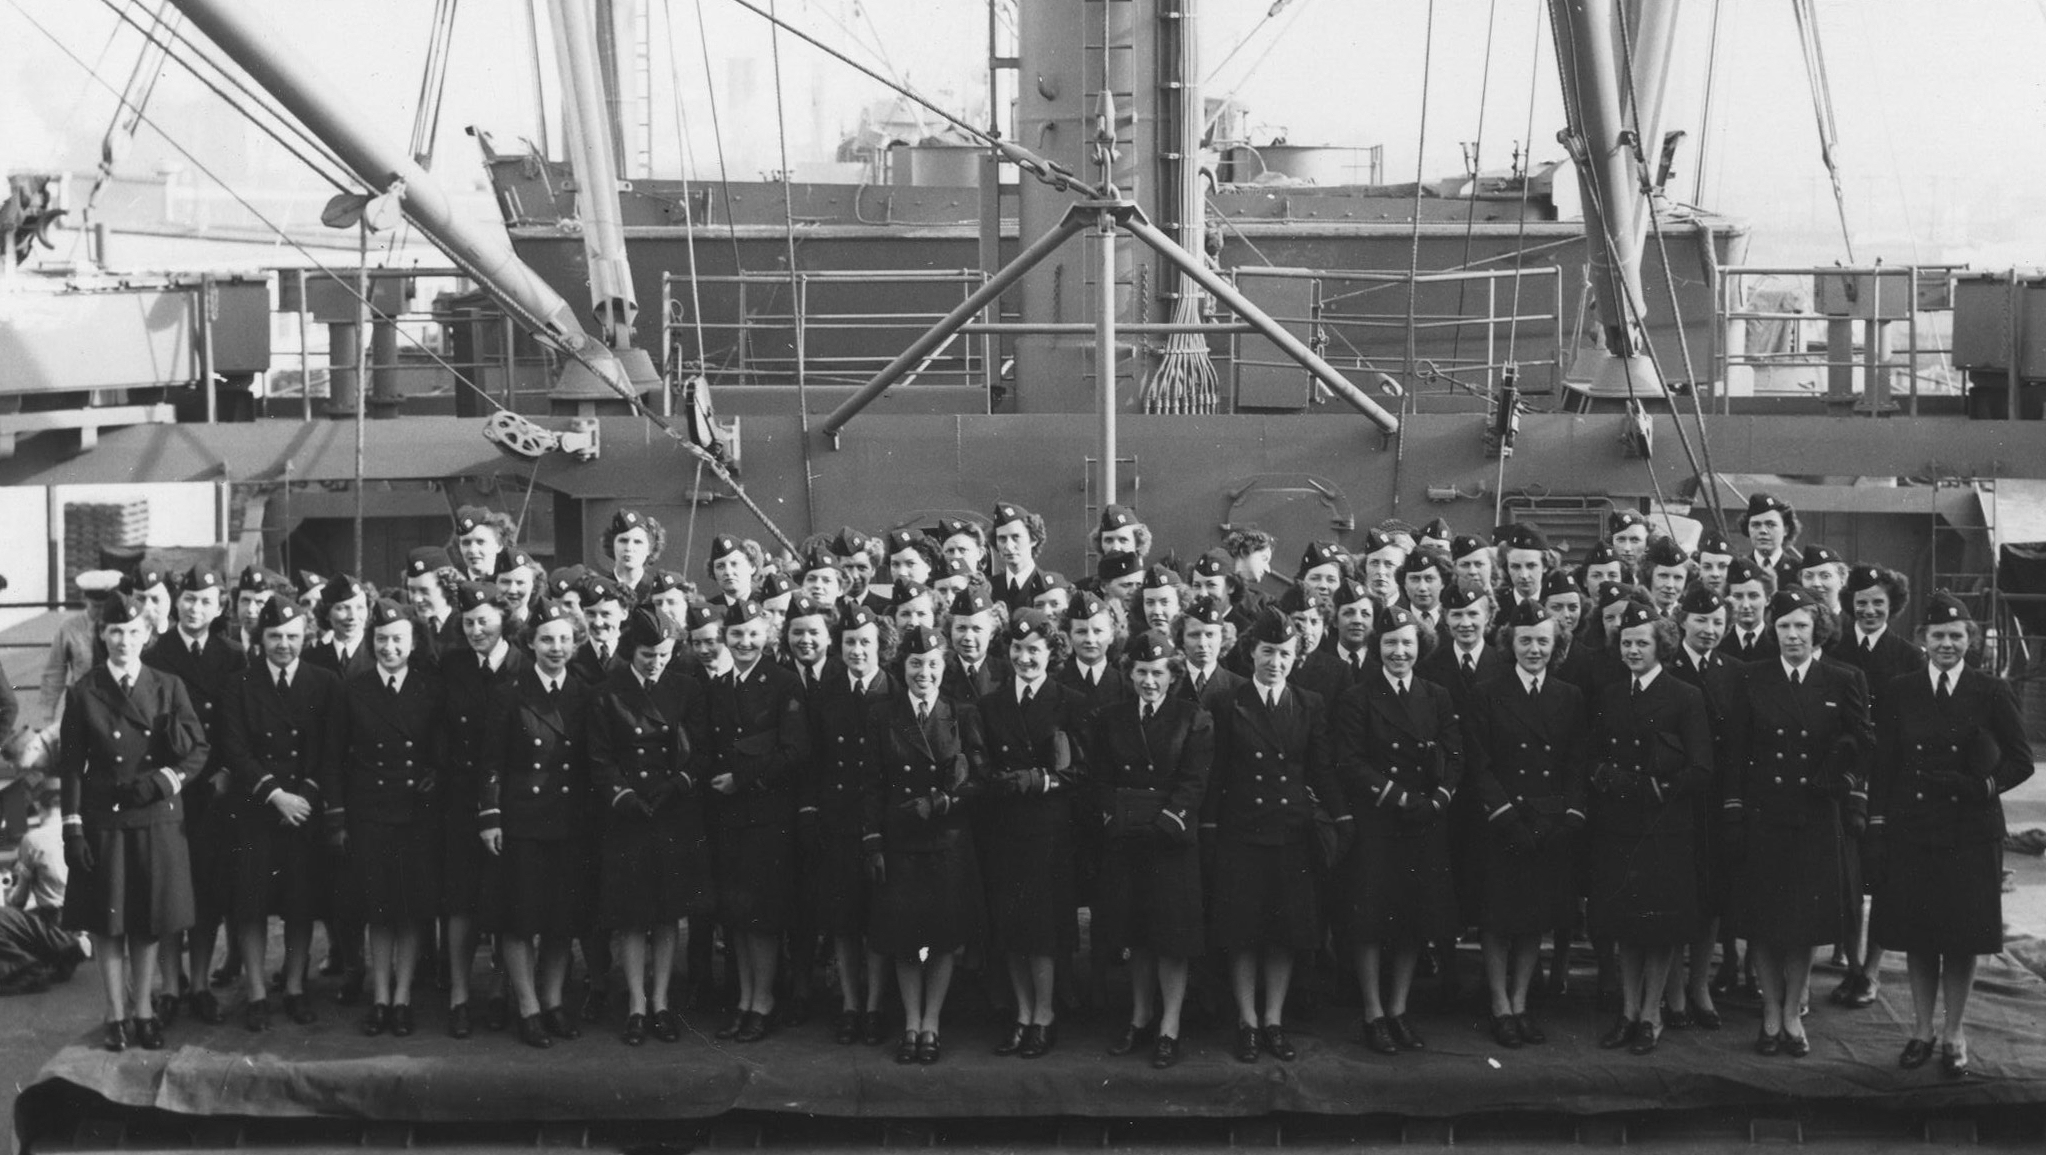 Nurses on the USS Hershaw in San Francisco